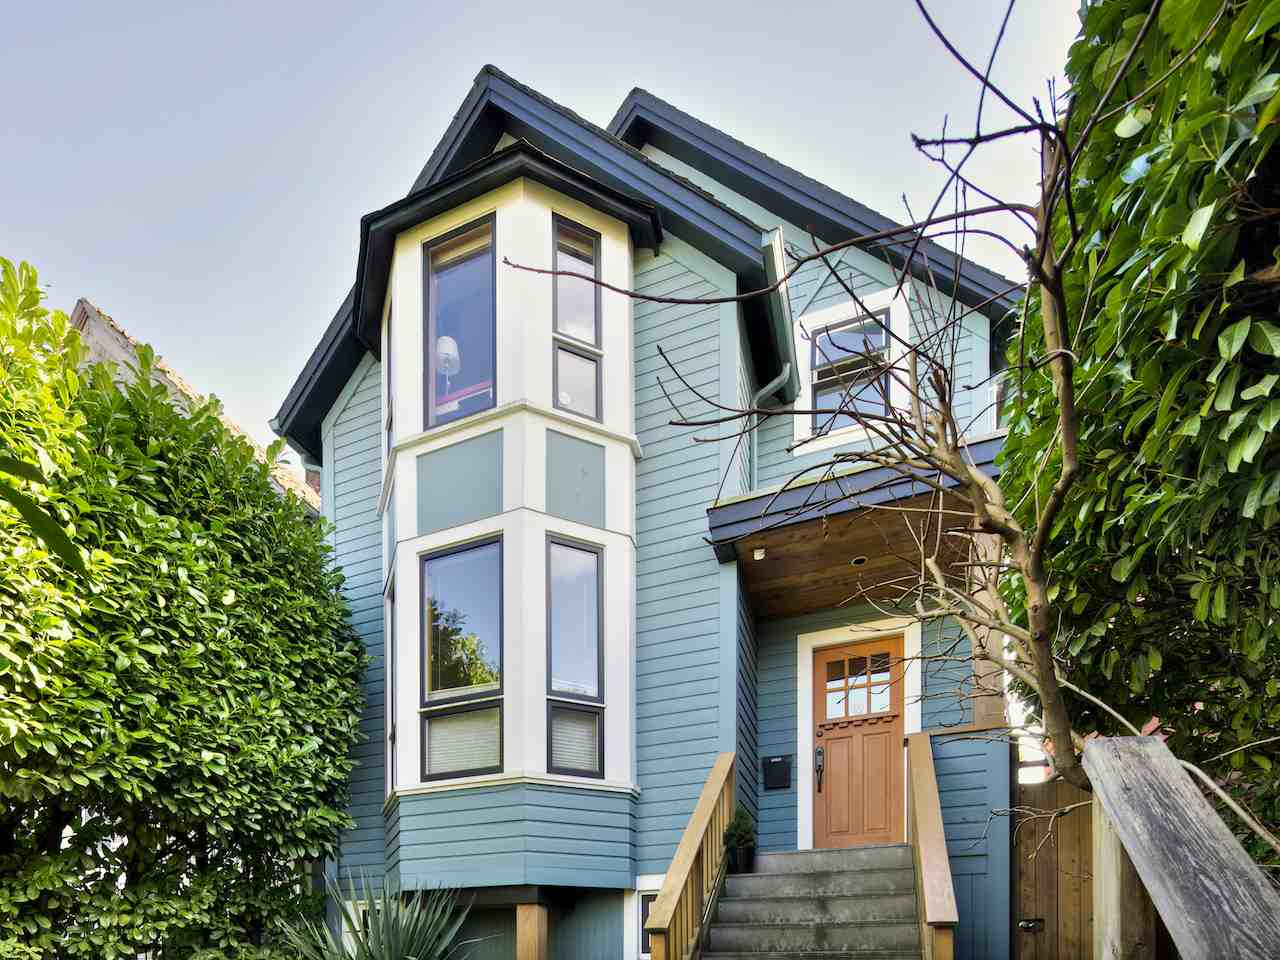 Main Photo: 640 UNION STREET in Vancouver: Mount Pleasant VE House for sale (Vancouver East)  : MLS®# R2052774